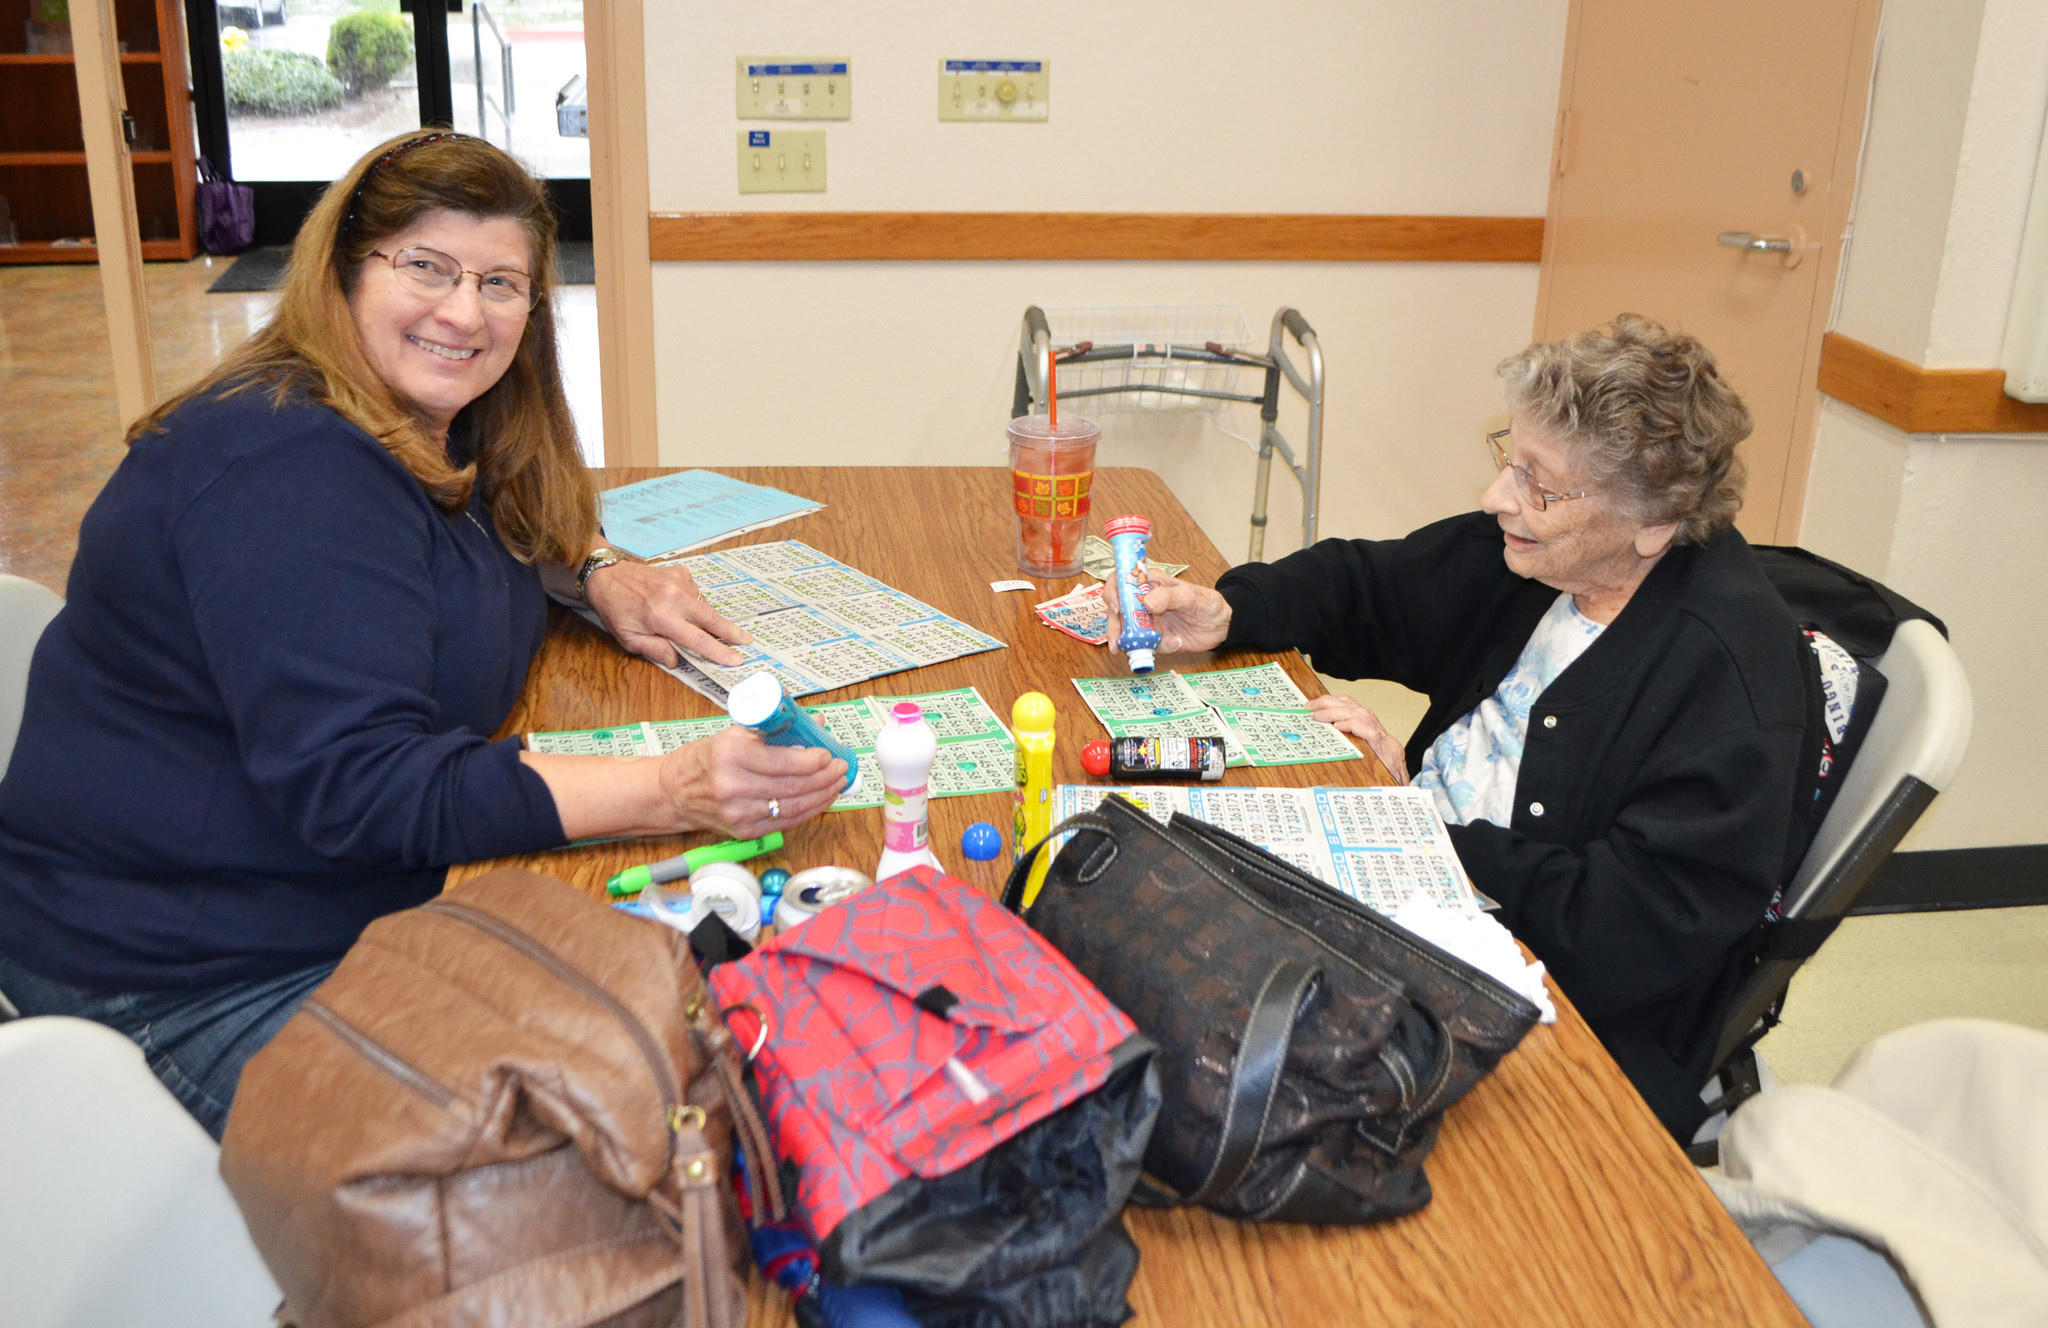 Susan Shaw and her mother, Nona Sturdy, playing bingo at the Ed Brown Center.